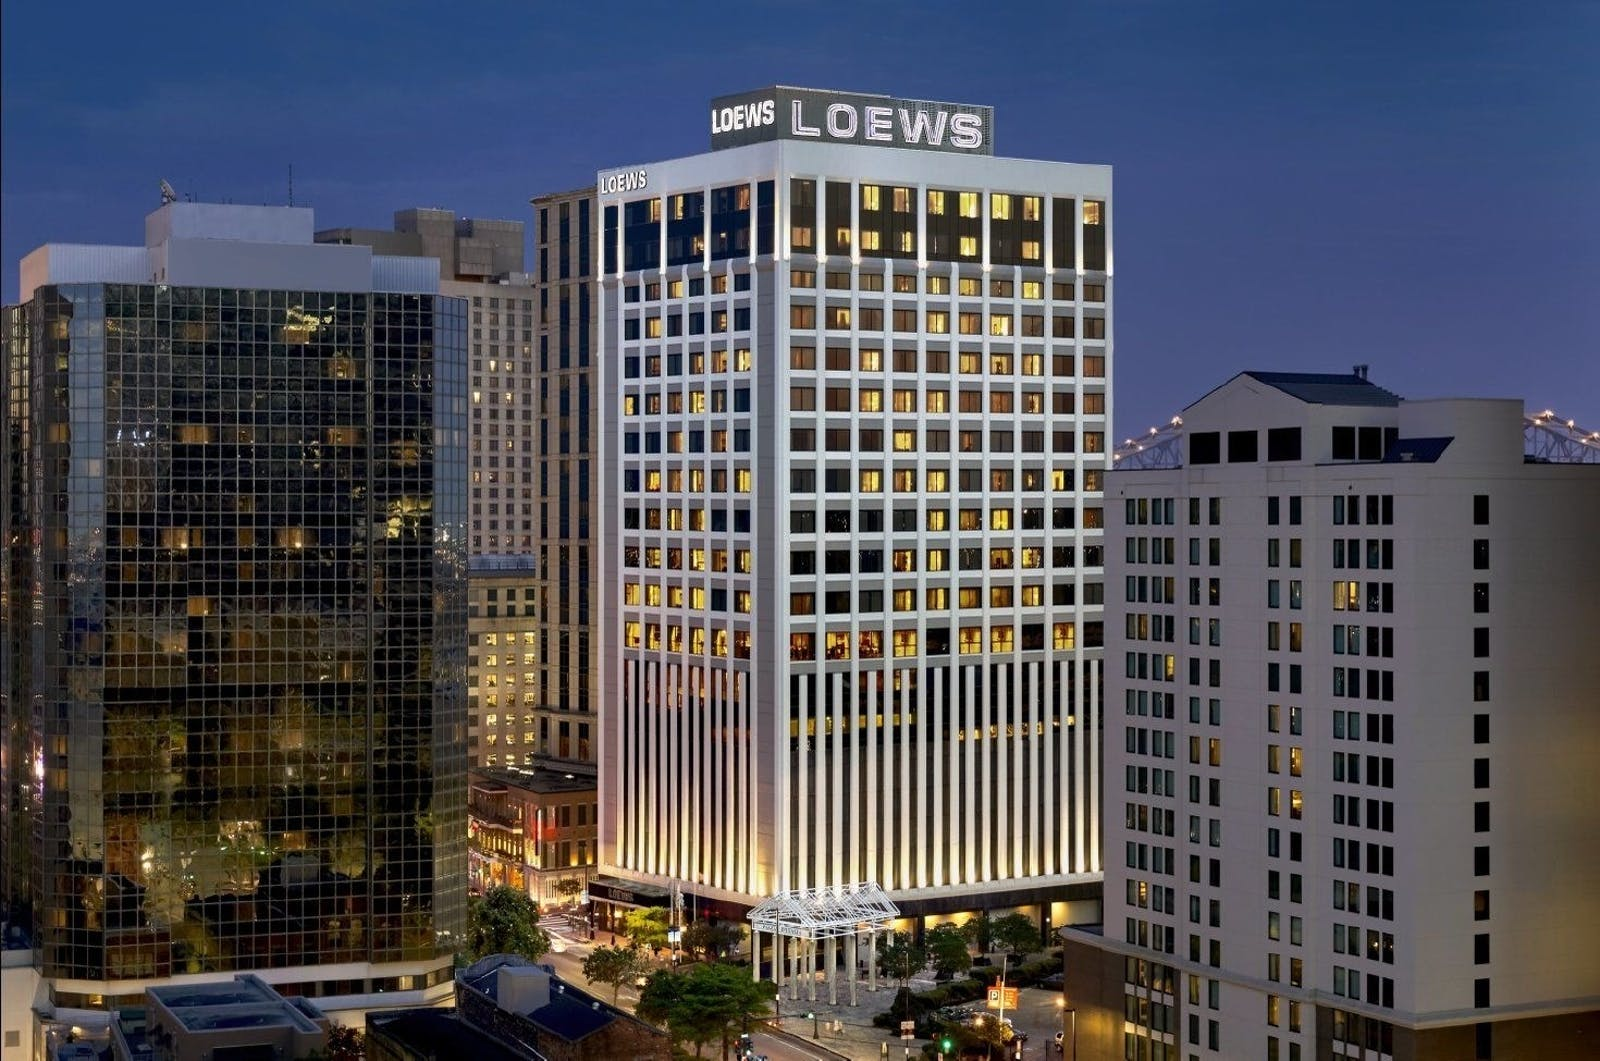 Building Exterior of Loews, New Orleans